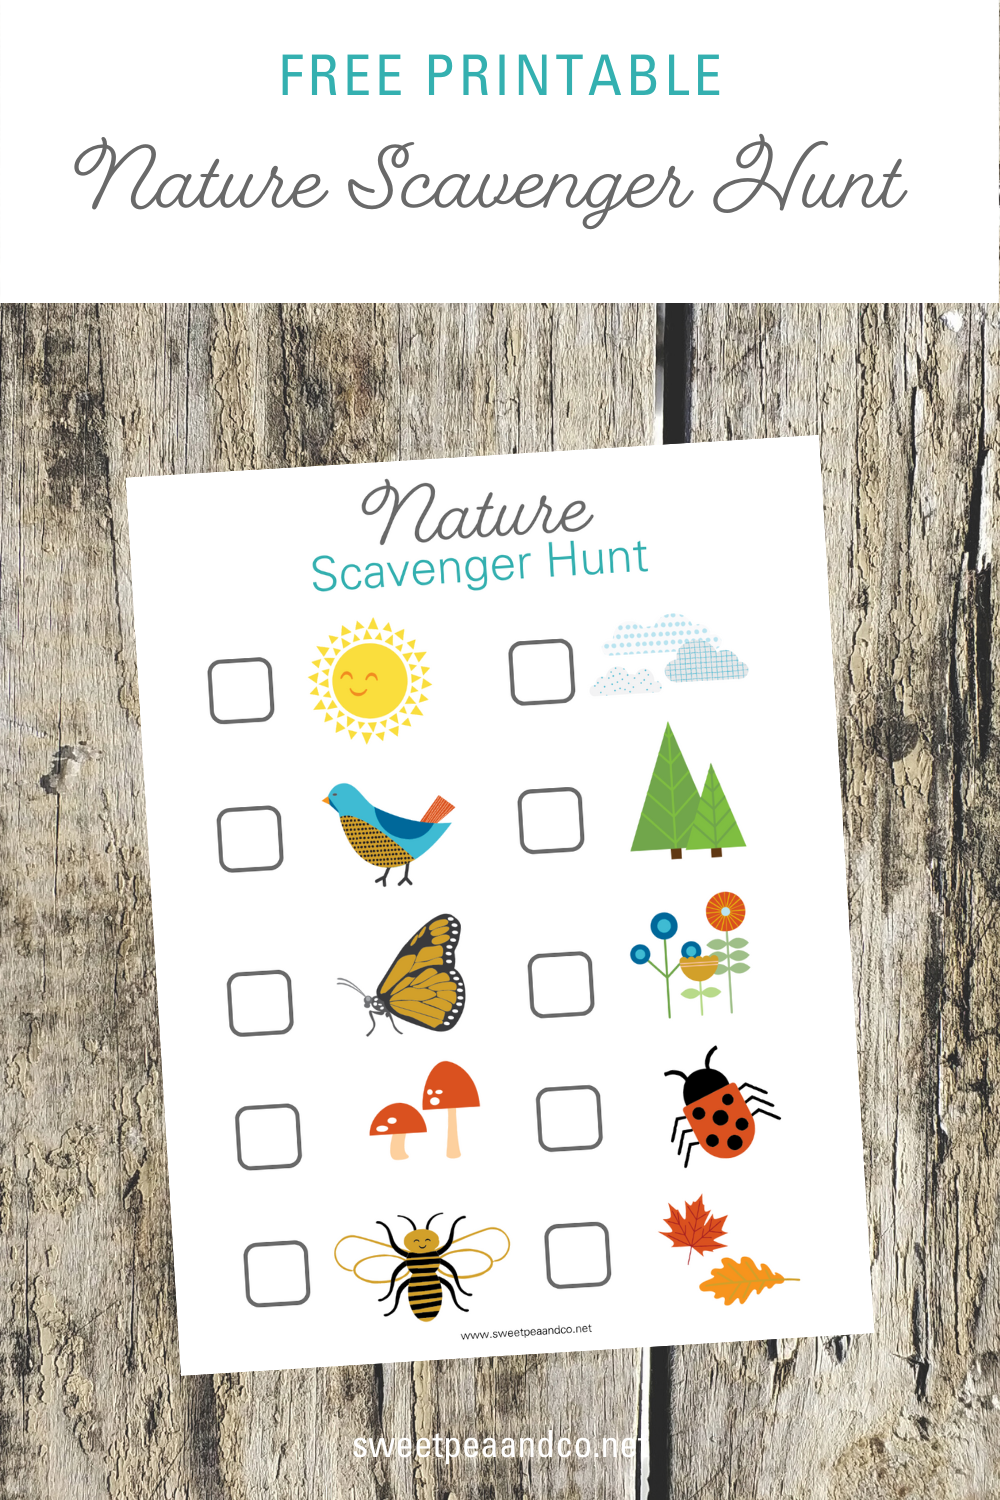 Get outdoors with a nature scavenger hunt